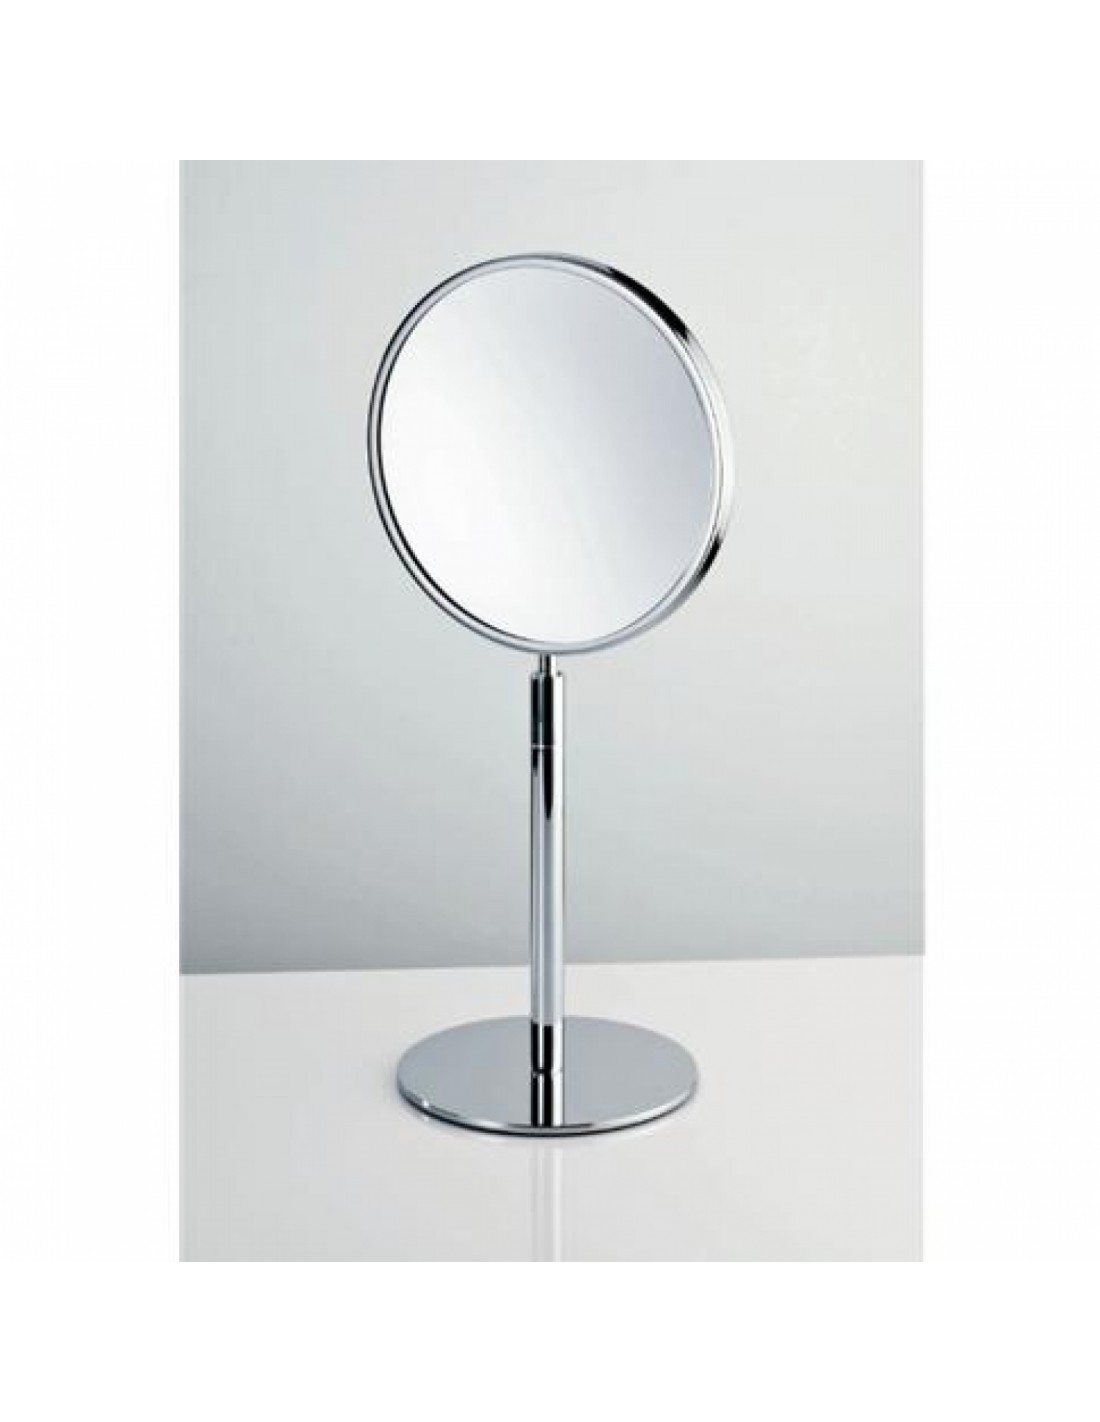 Miroir grossissant sur pied Decor Walther